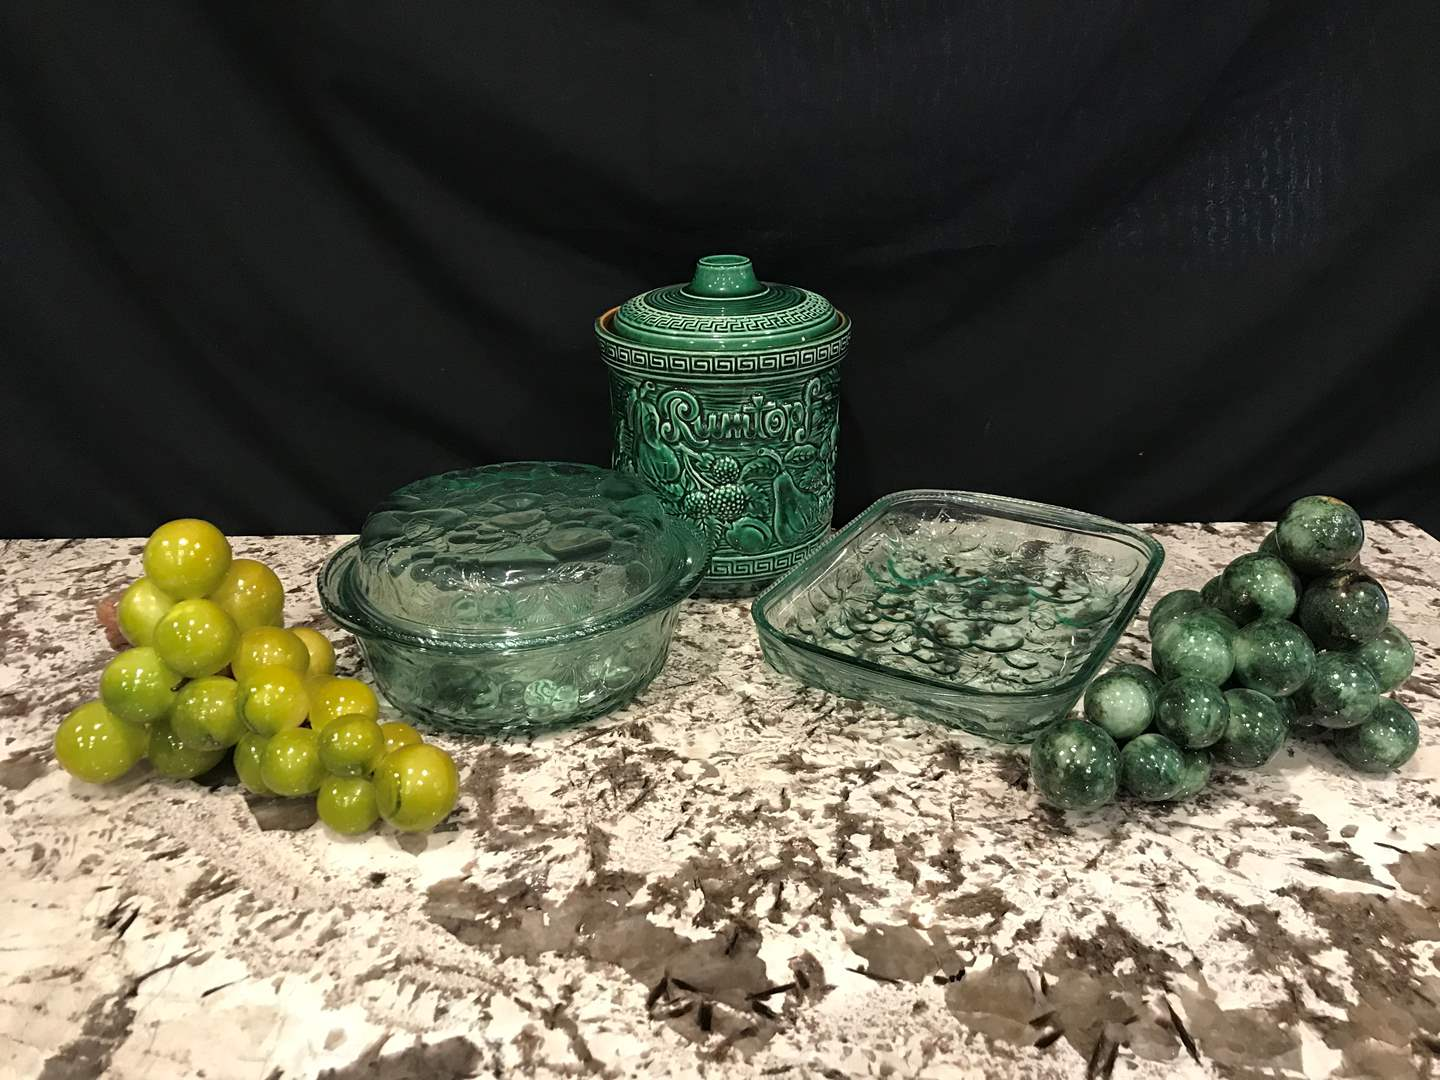 Lot # 69 - Glass Baking Dishes, Rumtopf Cookie Jar, Casserole Dishes & 2 Large Marble Grapes (main image)